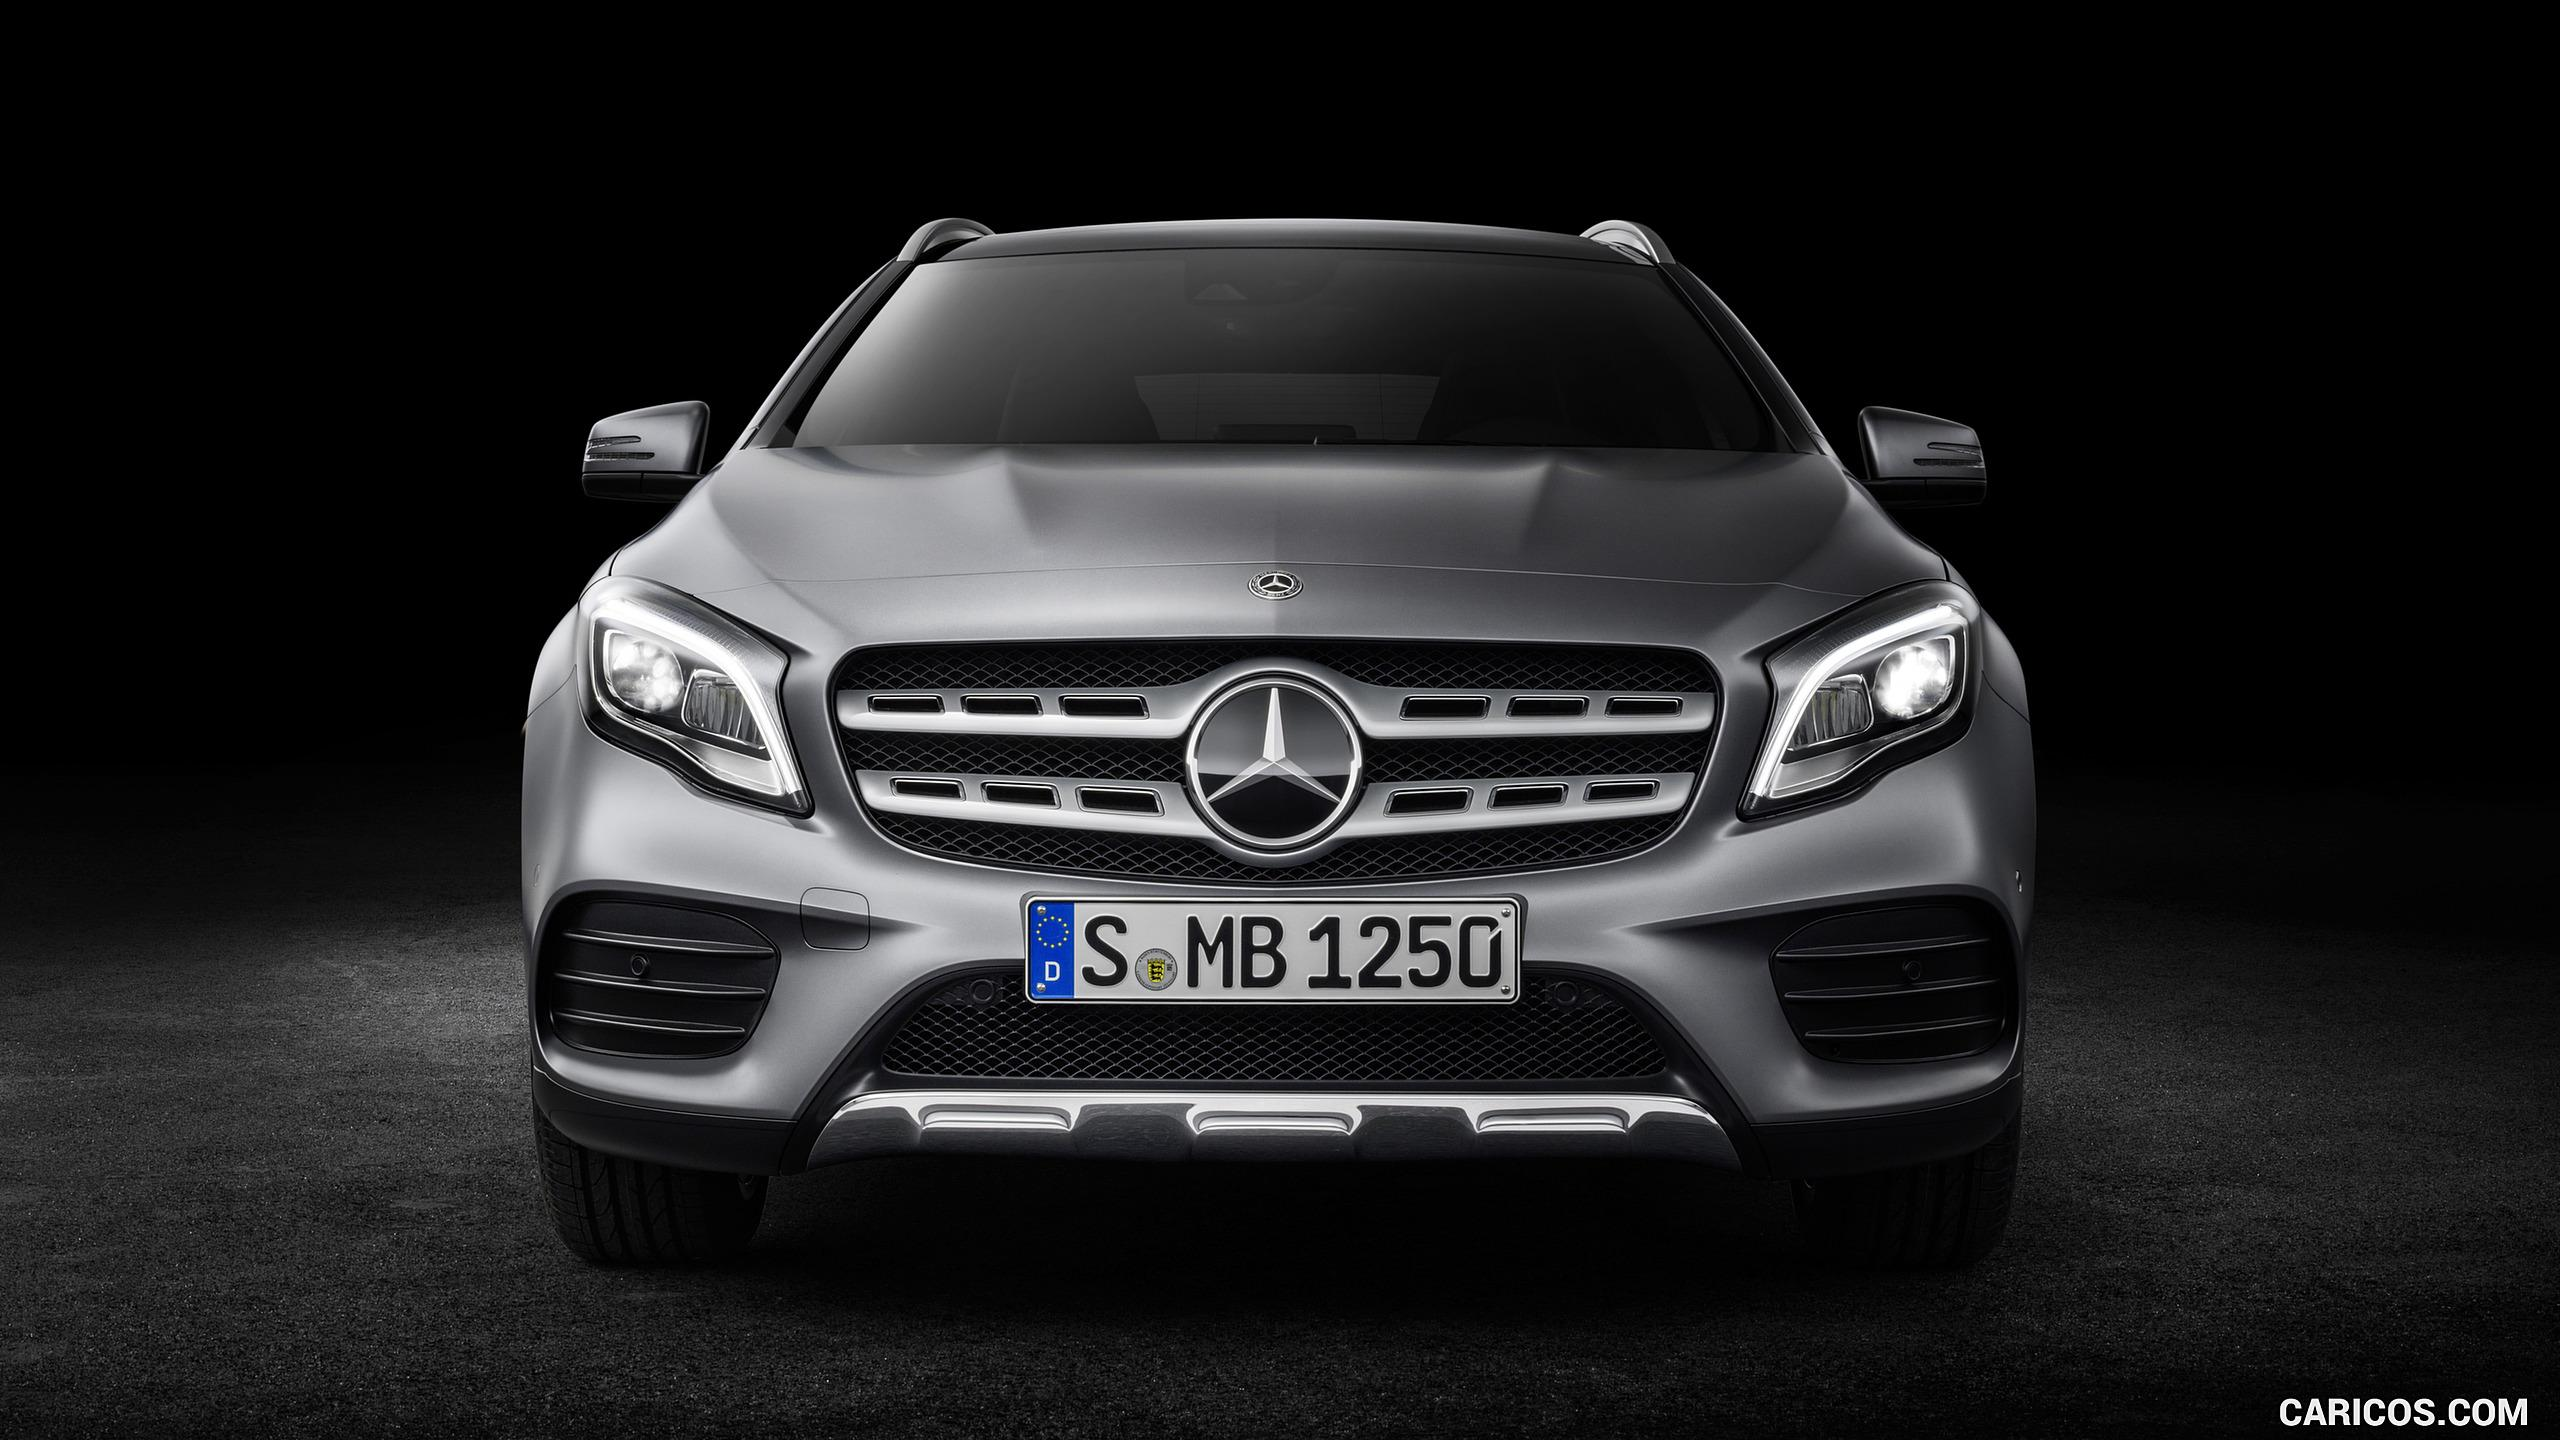 2018 Mercedes-Benz GLA 250 4MATIC AMG Line - Front | HD Wallpaper #40